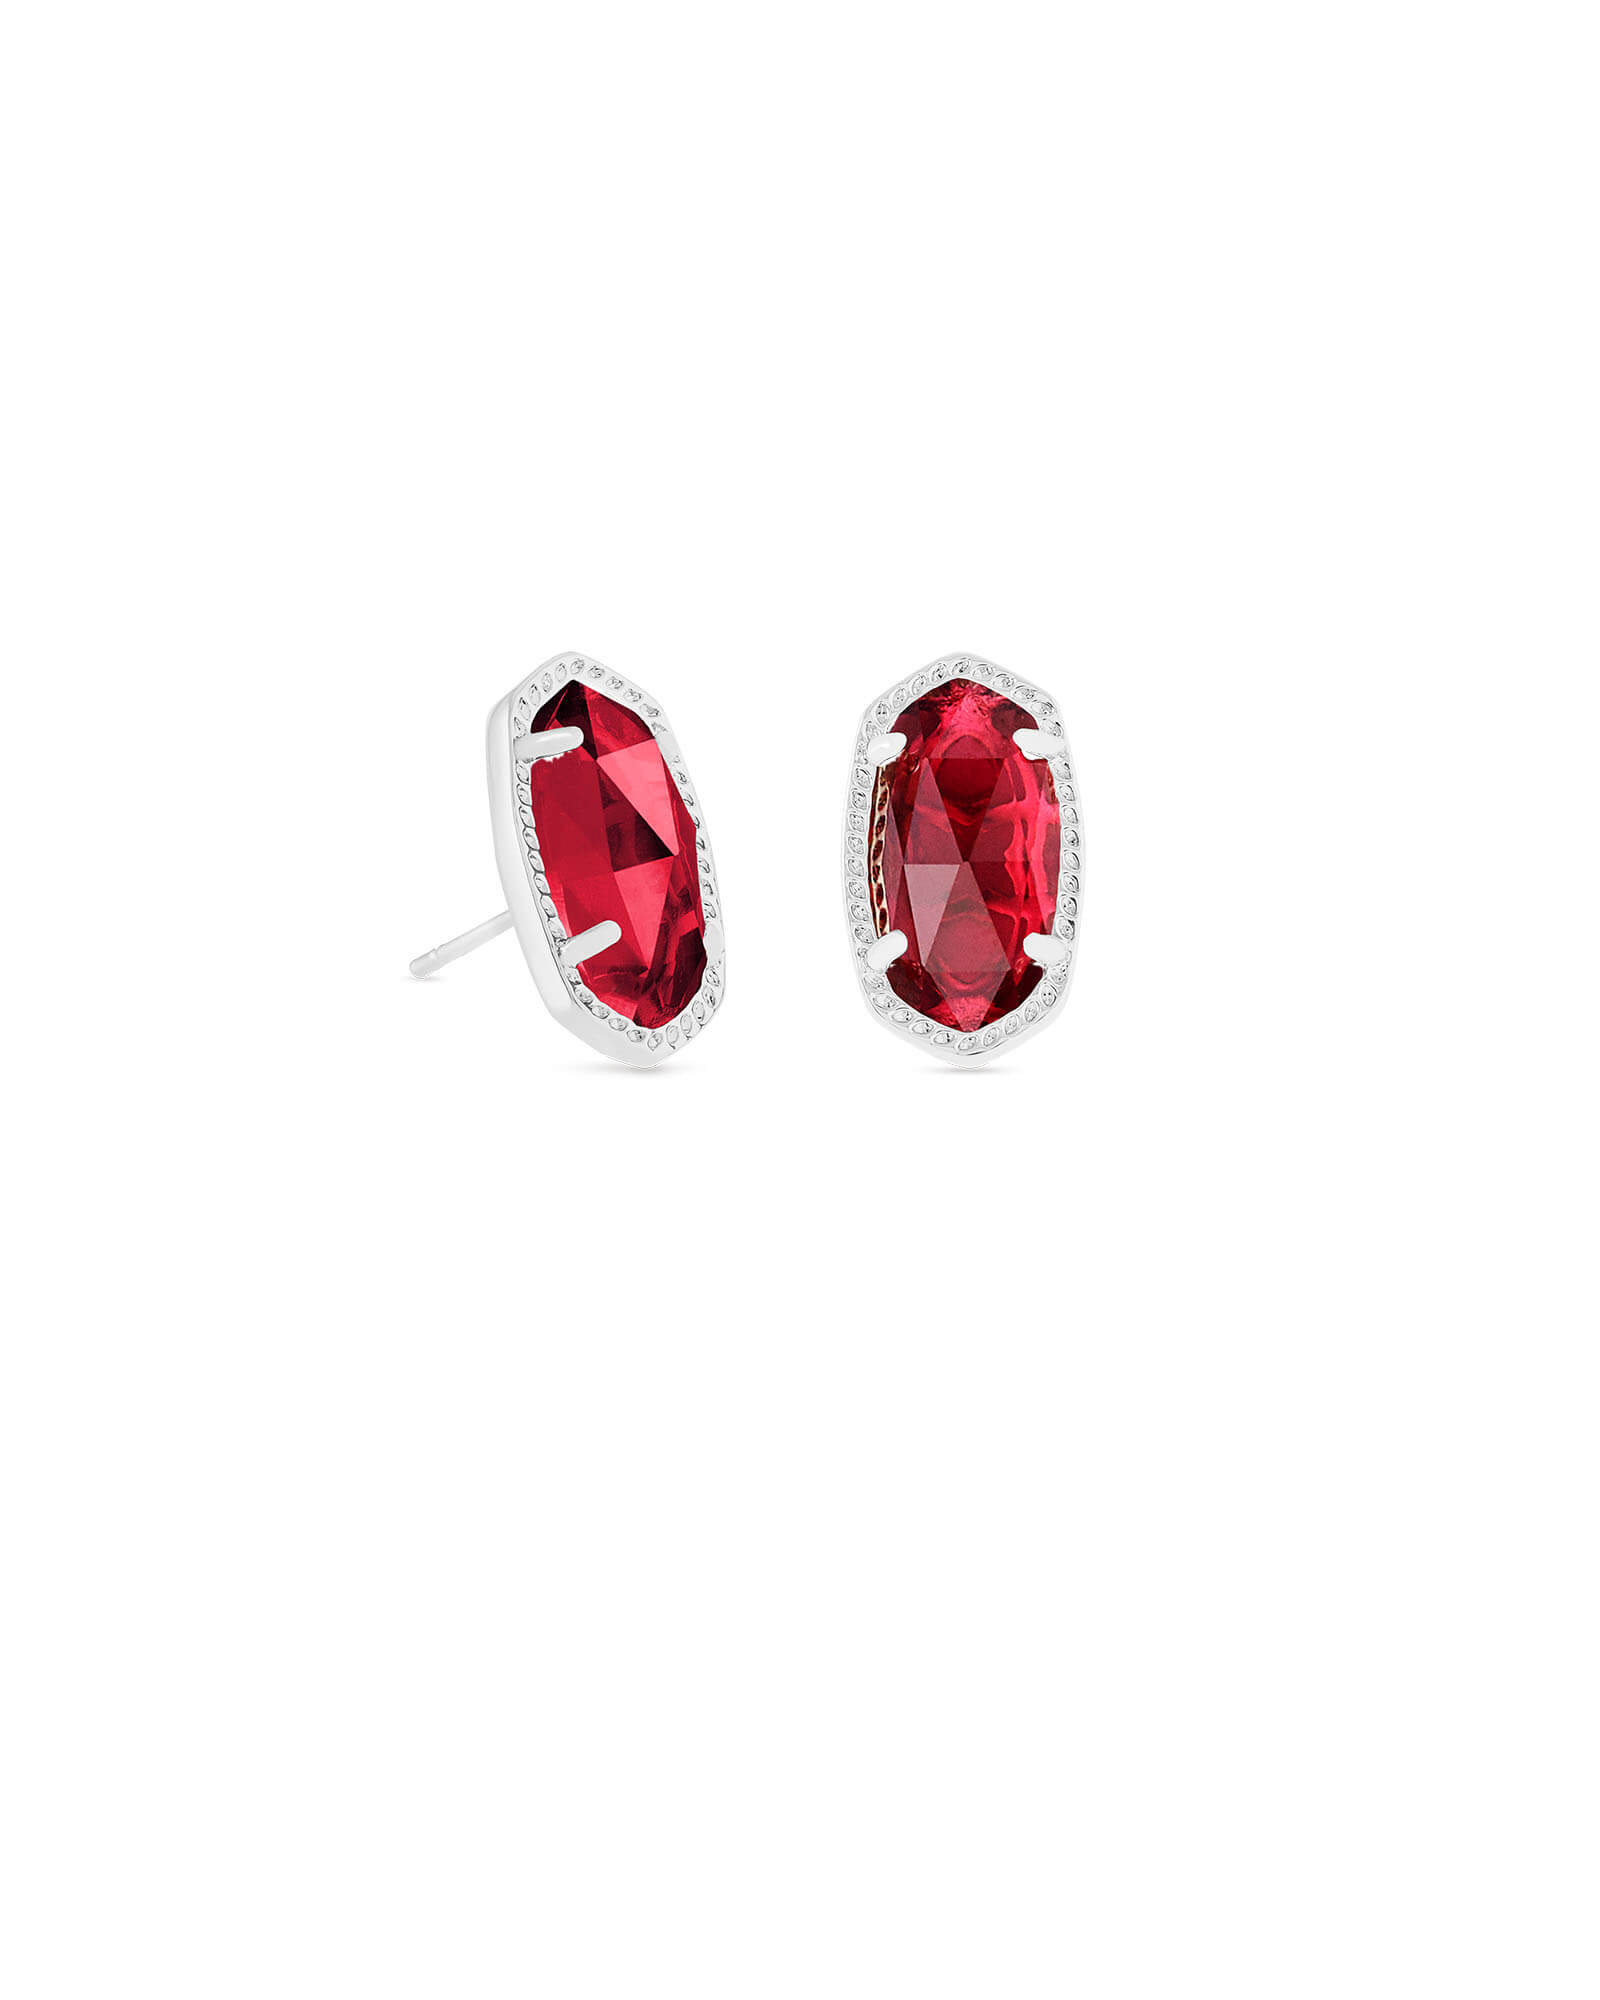 Ellie Silver Stud Earrings in Berry